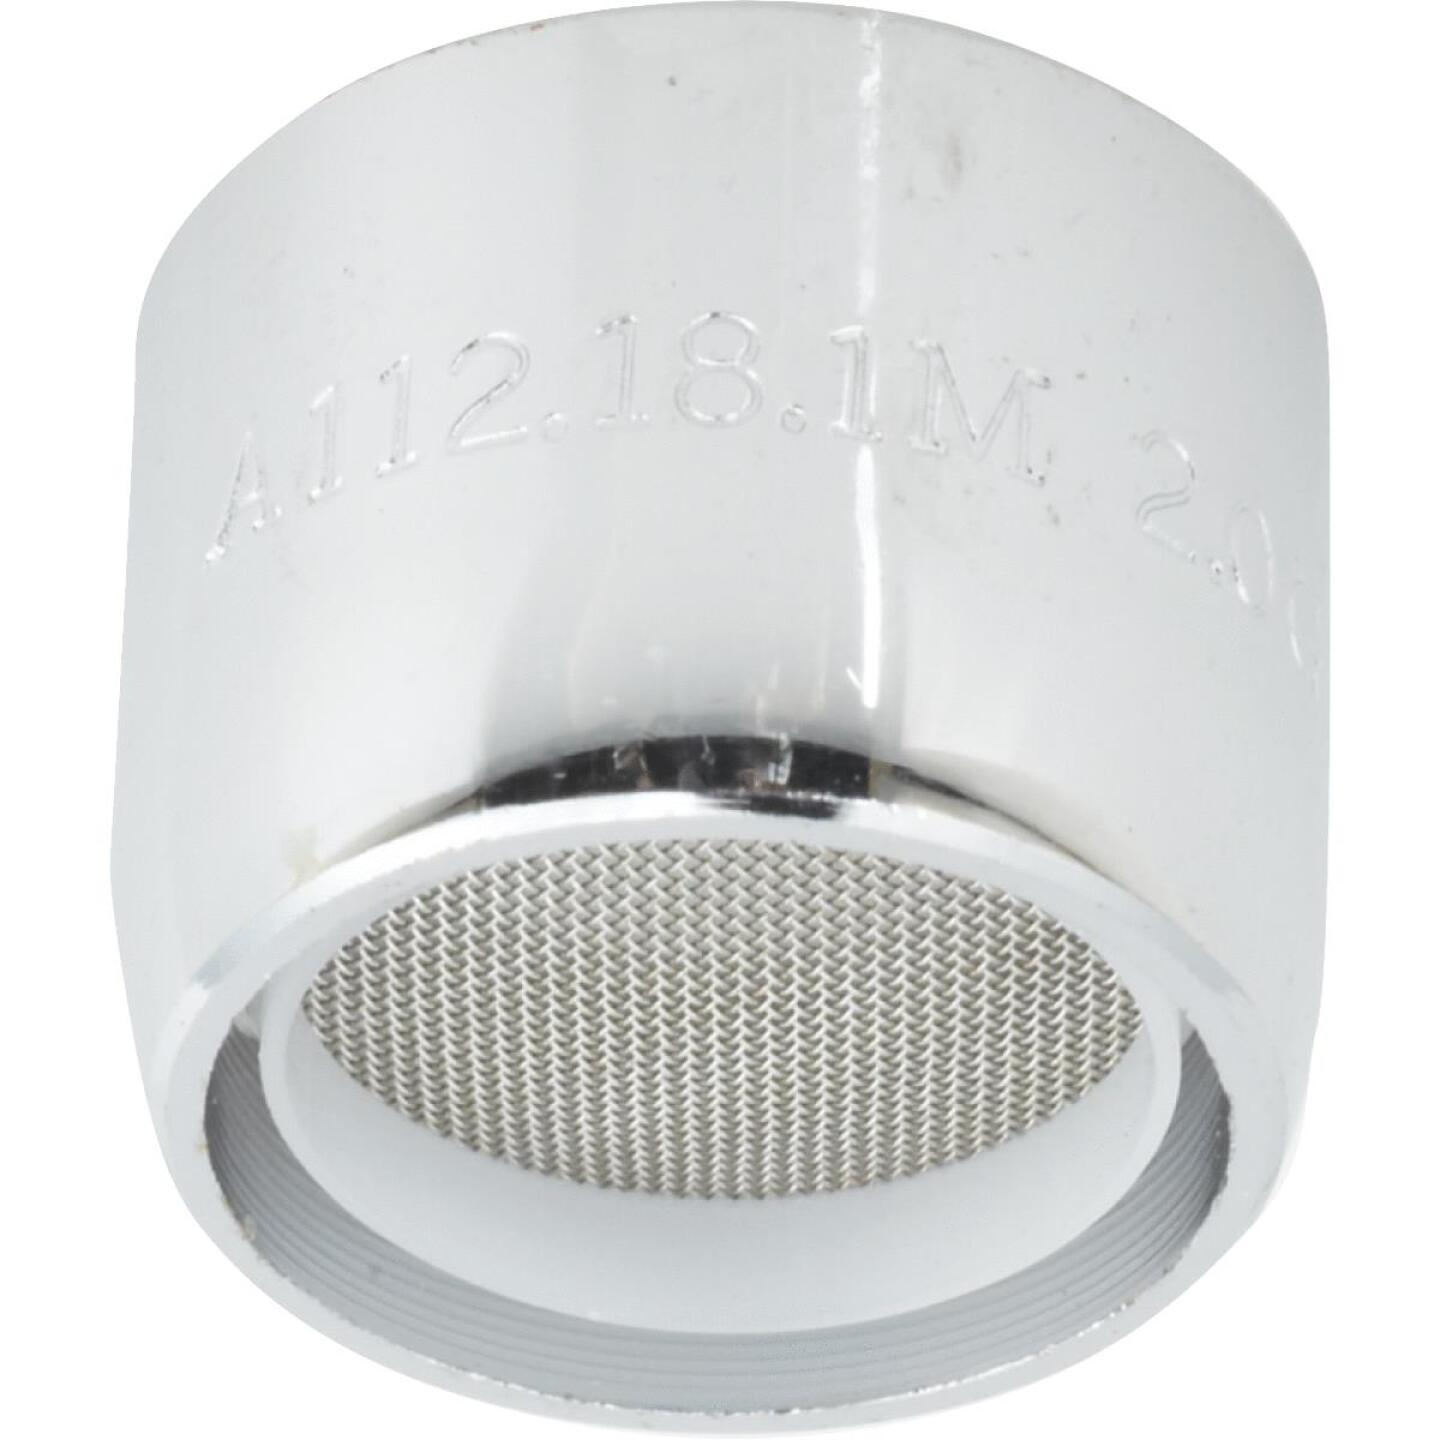 Do it 2.0 GPM Low Lead Water Saver Aerator, 3/4 In. Female Image 1